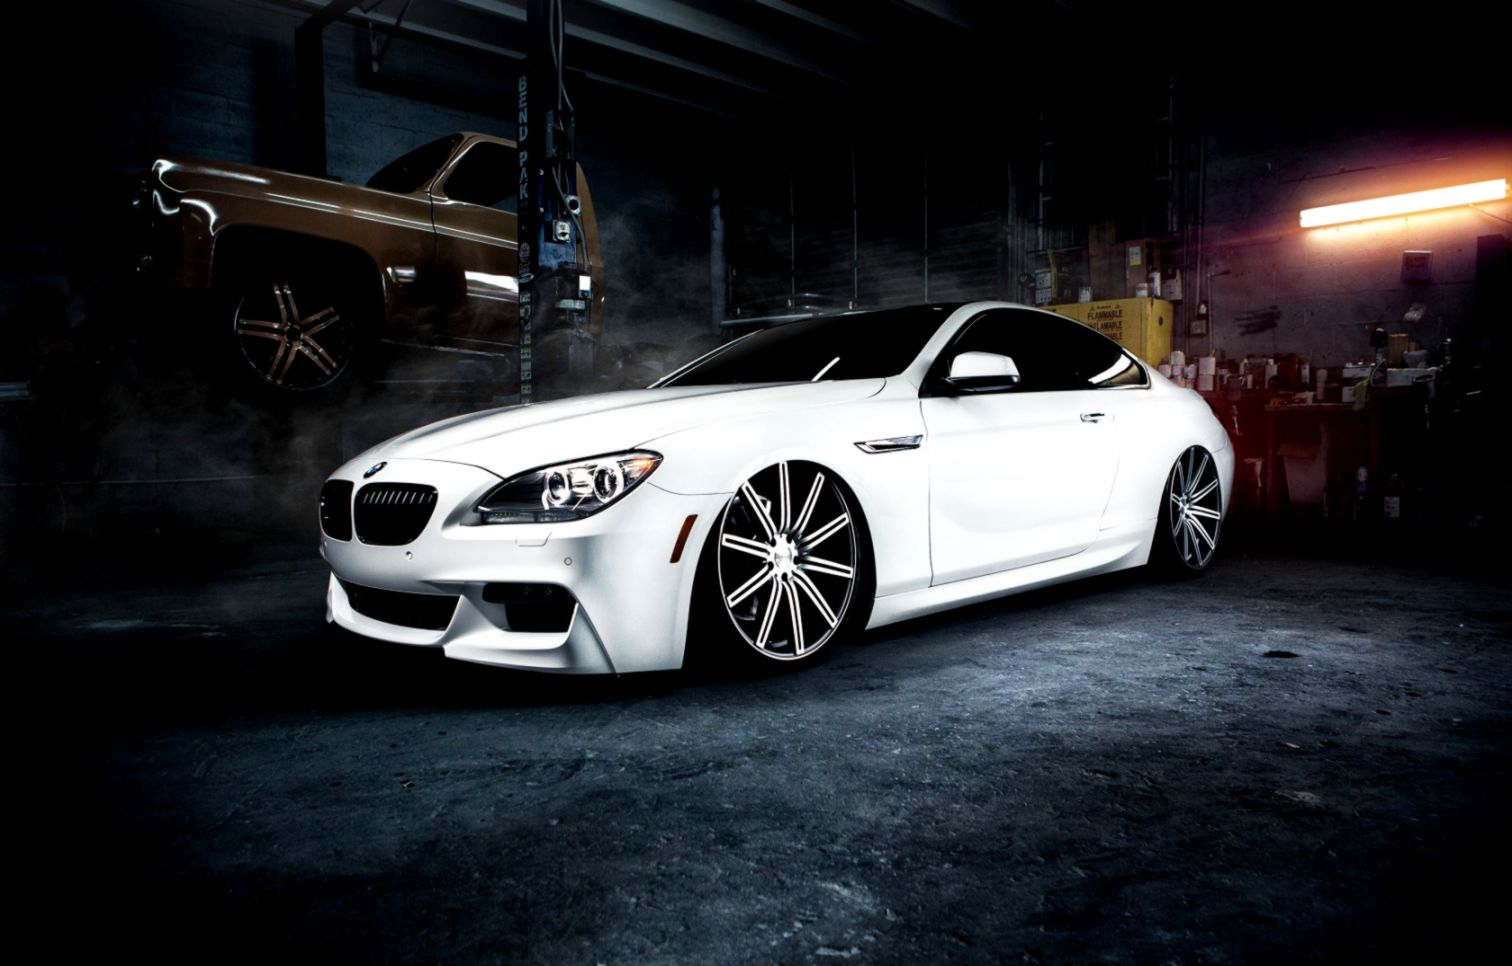 BMW M6 Wallpaper and Background Image 1680x1050 ID444441